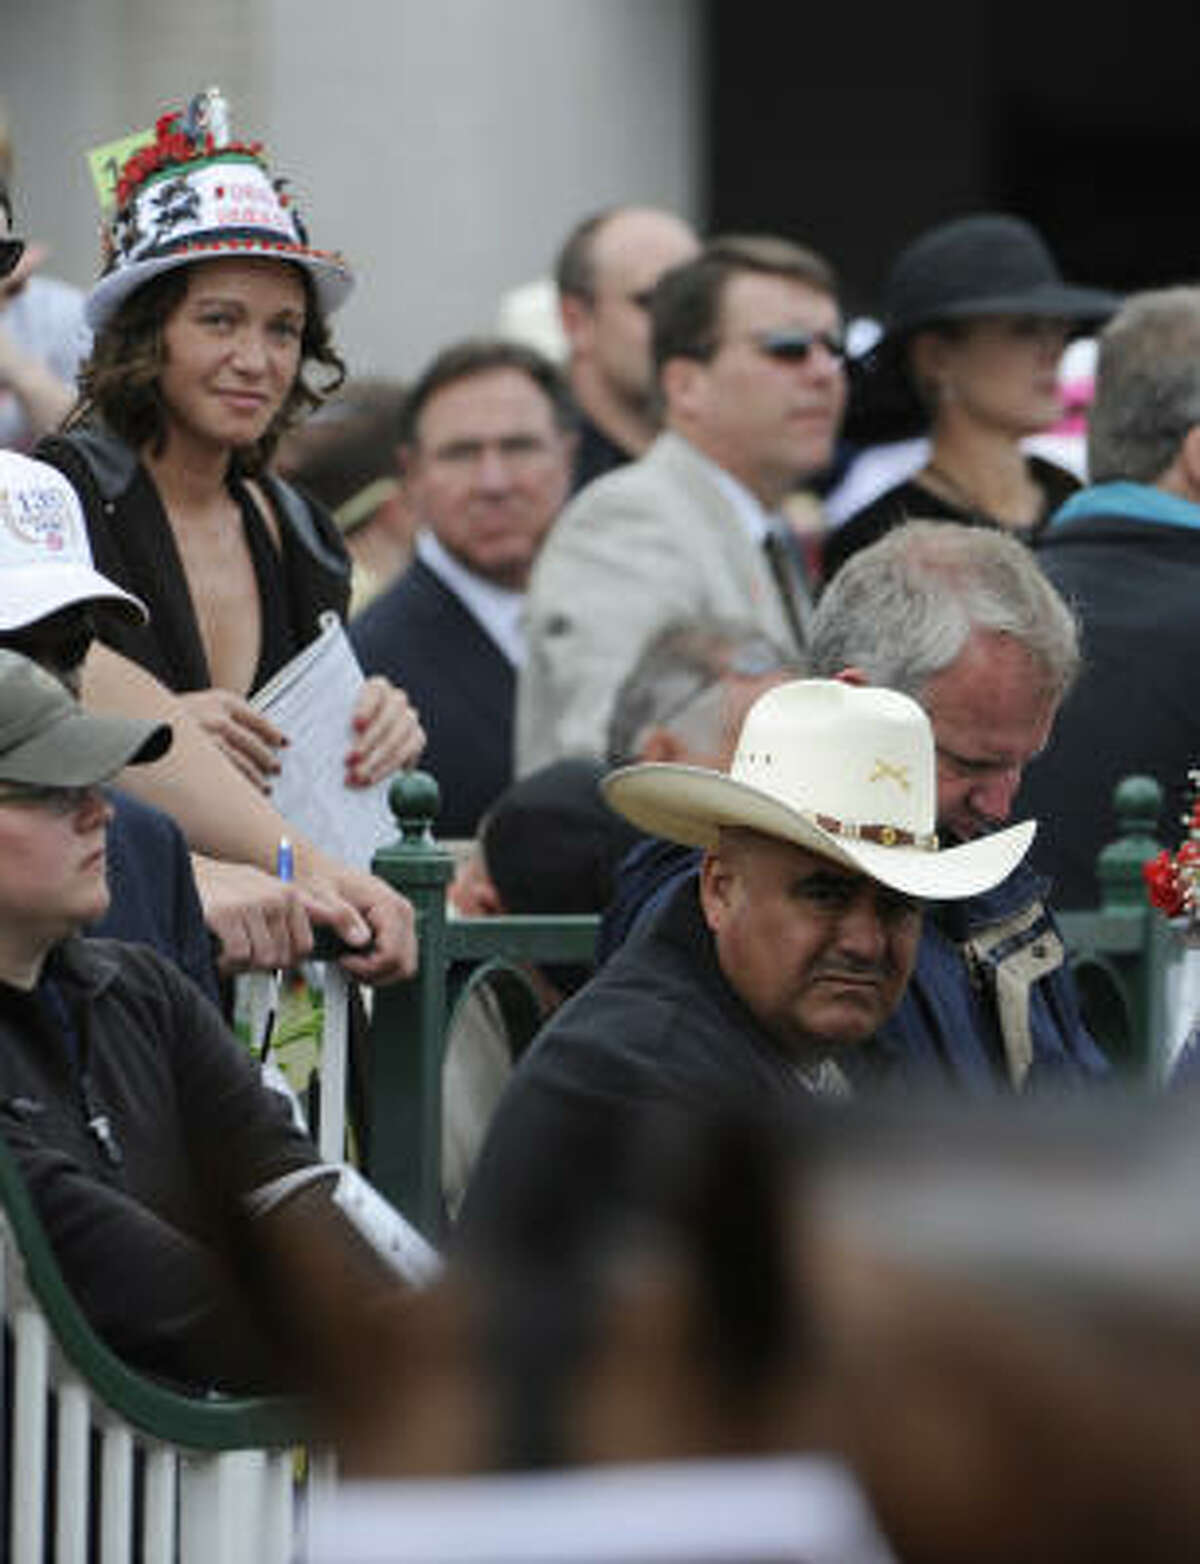 From cowboy hats and baseball caps to decorated fedoras, the Kentucky Derby is not lacking when it comes to headwear.